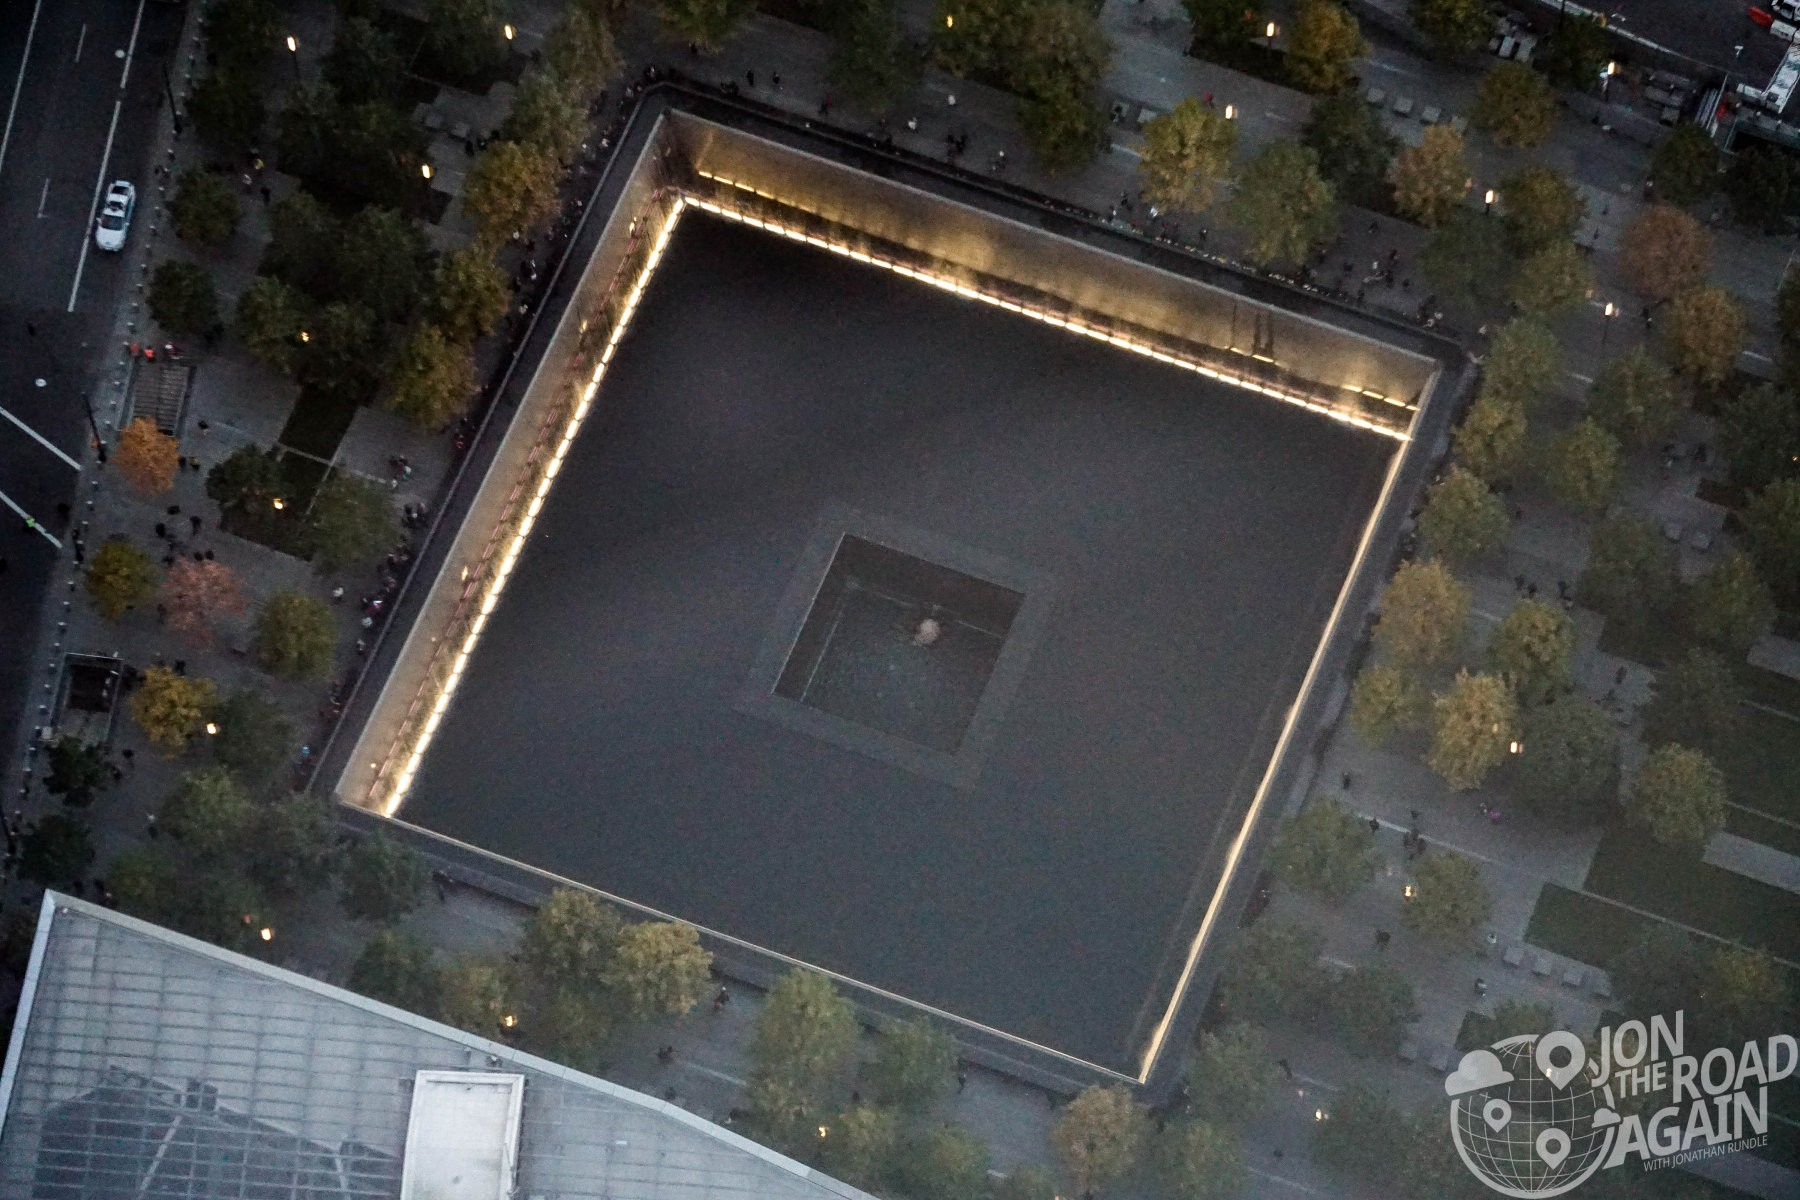 September 11th Memorial footprint